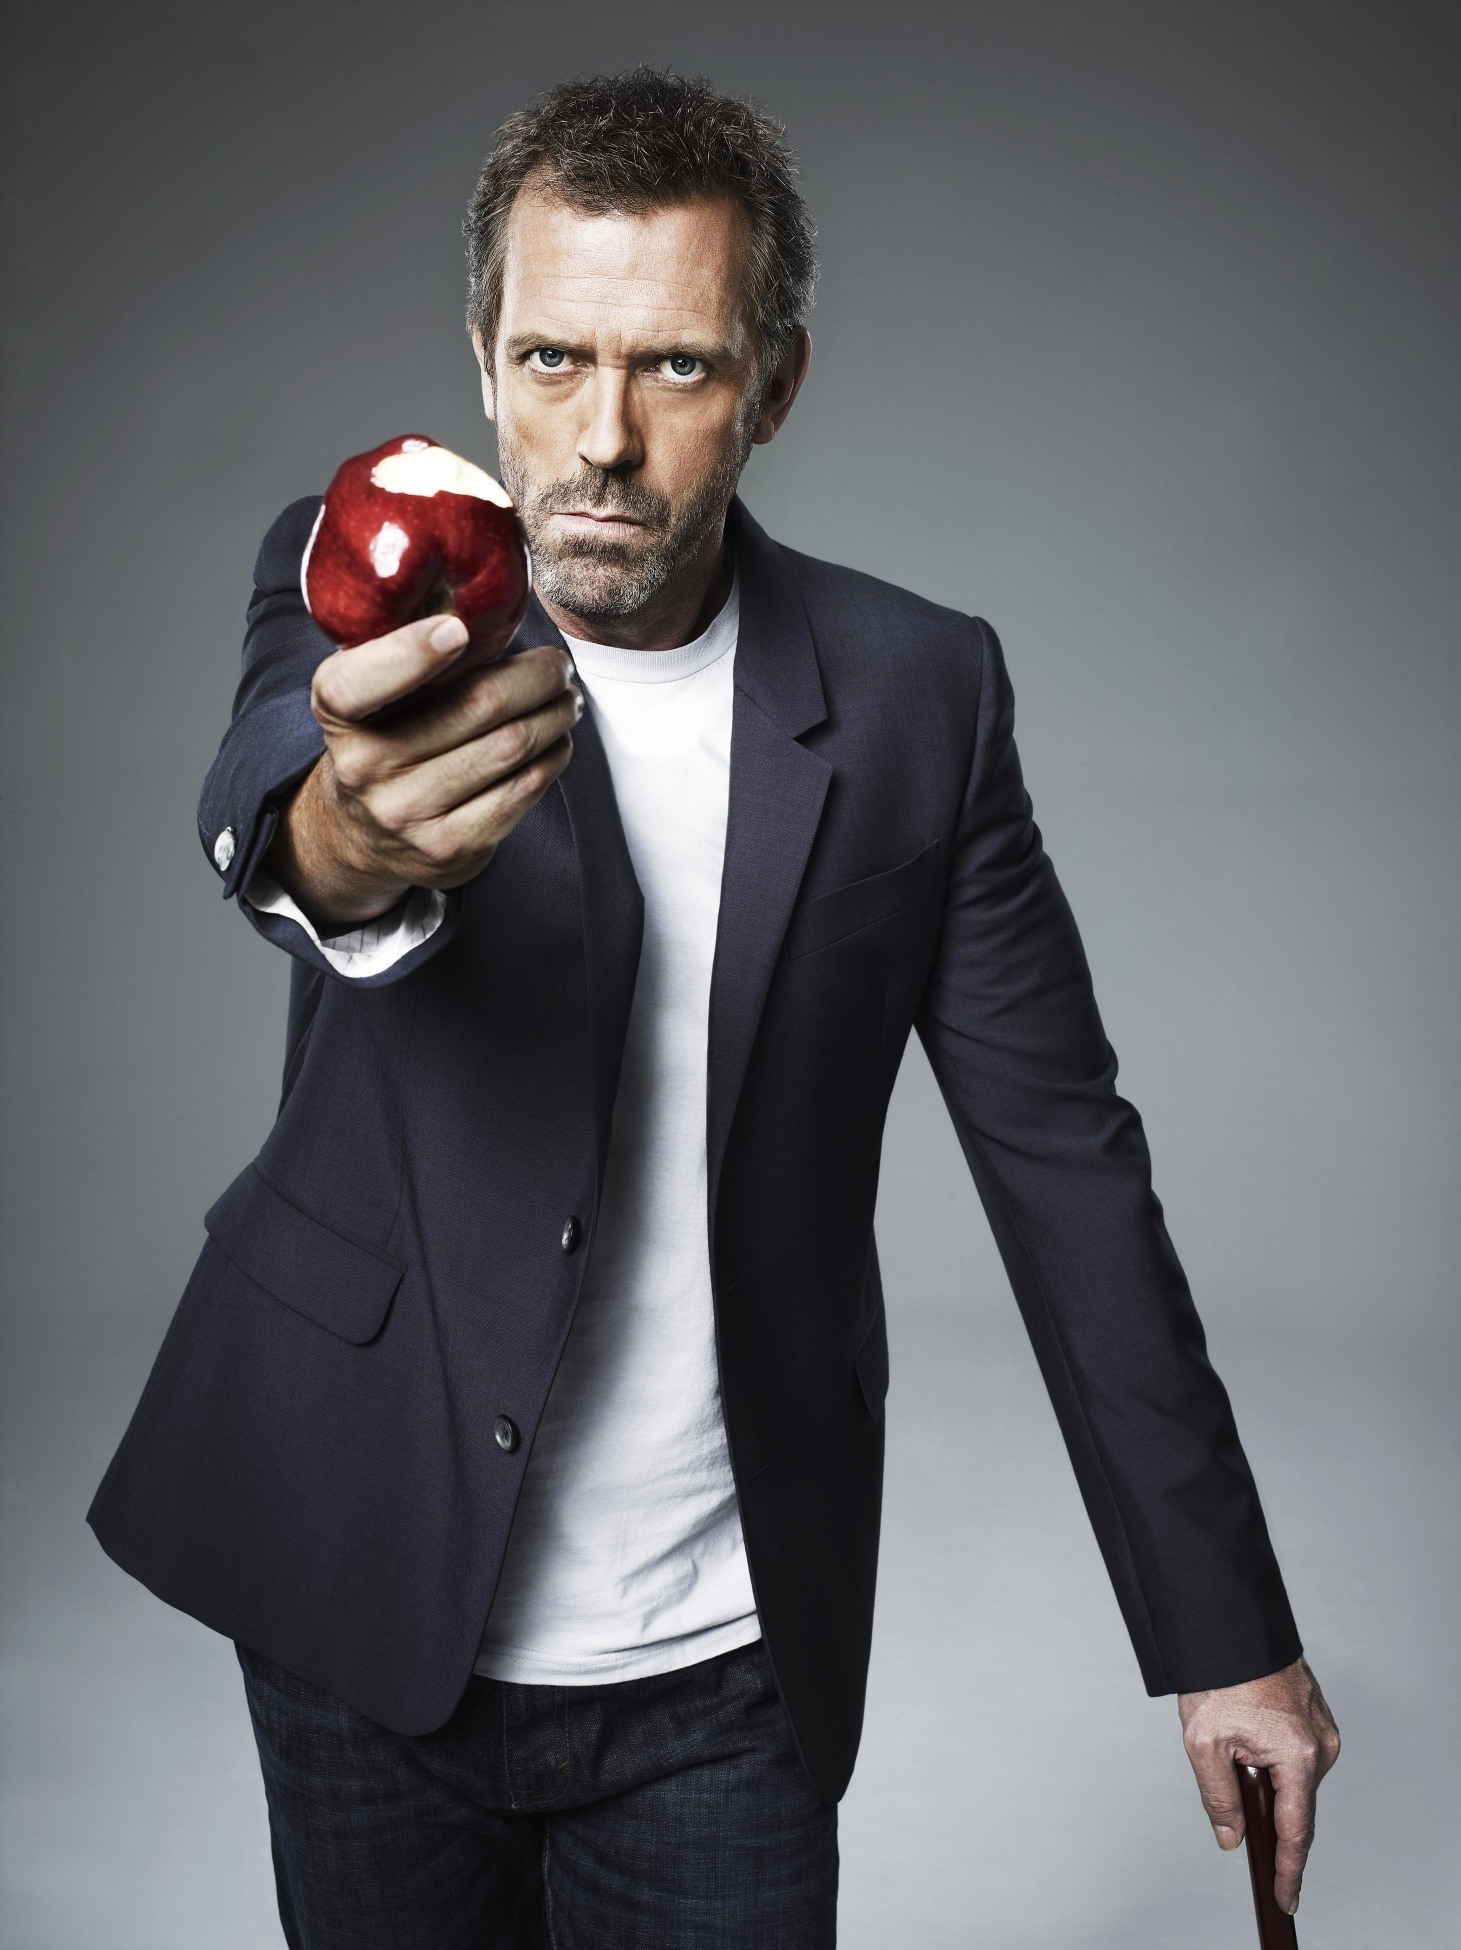 House - Season 7 Promotional Photos